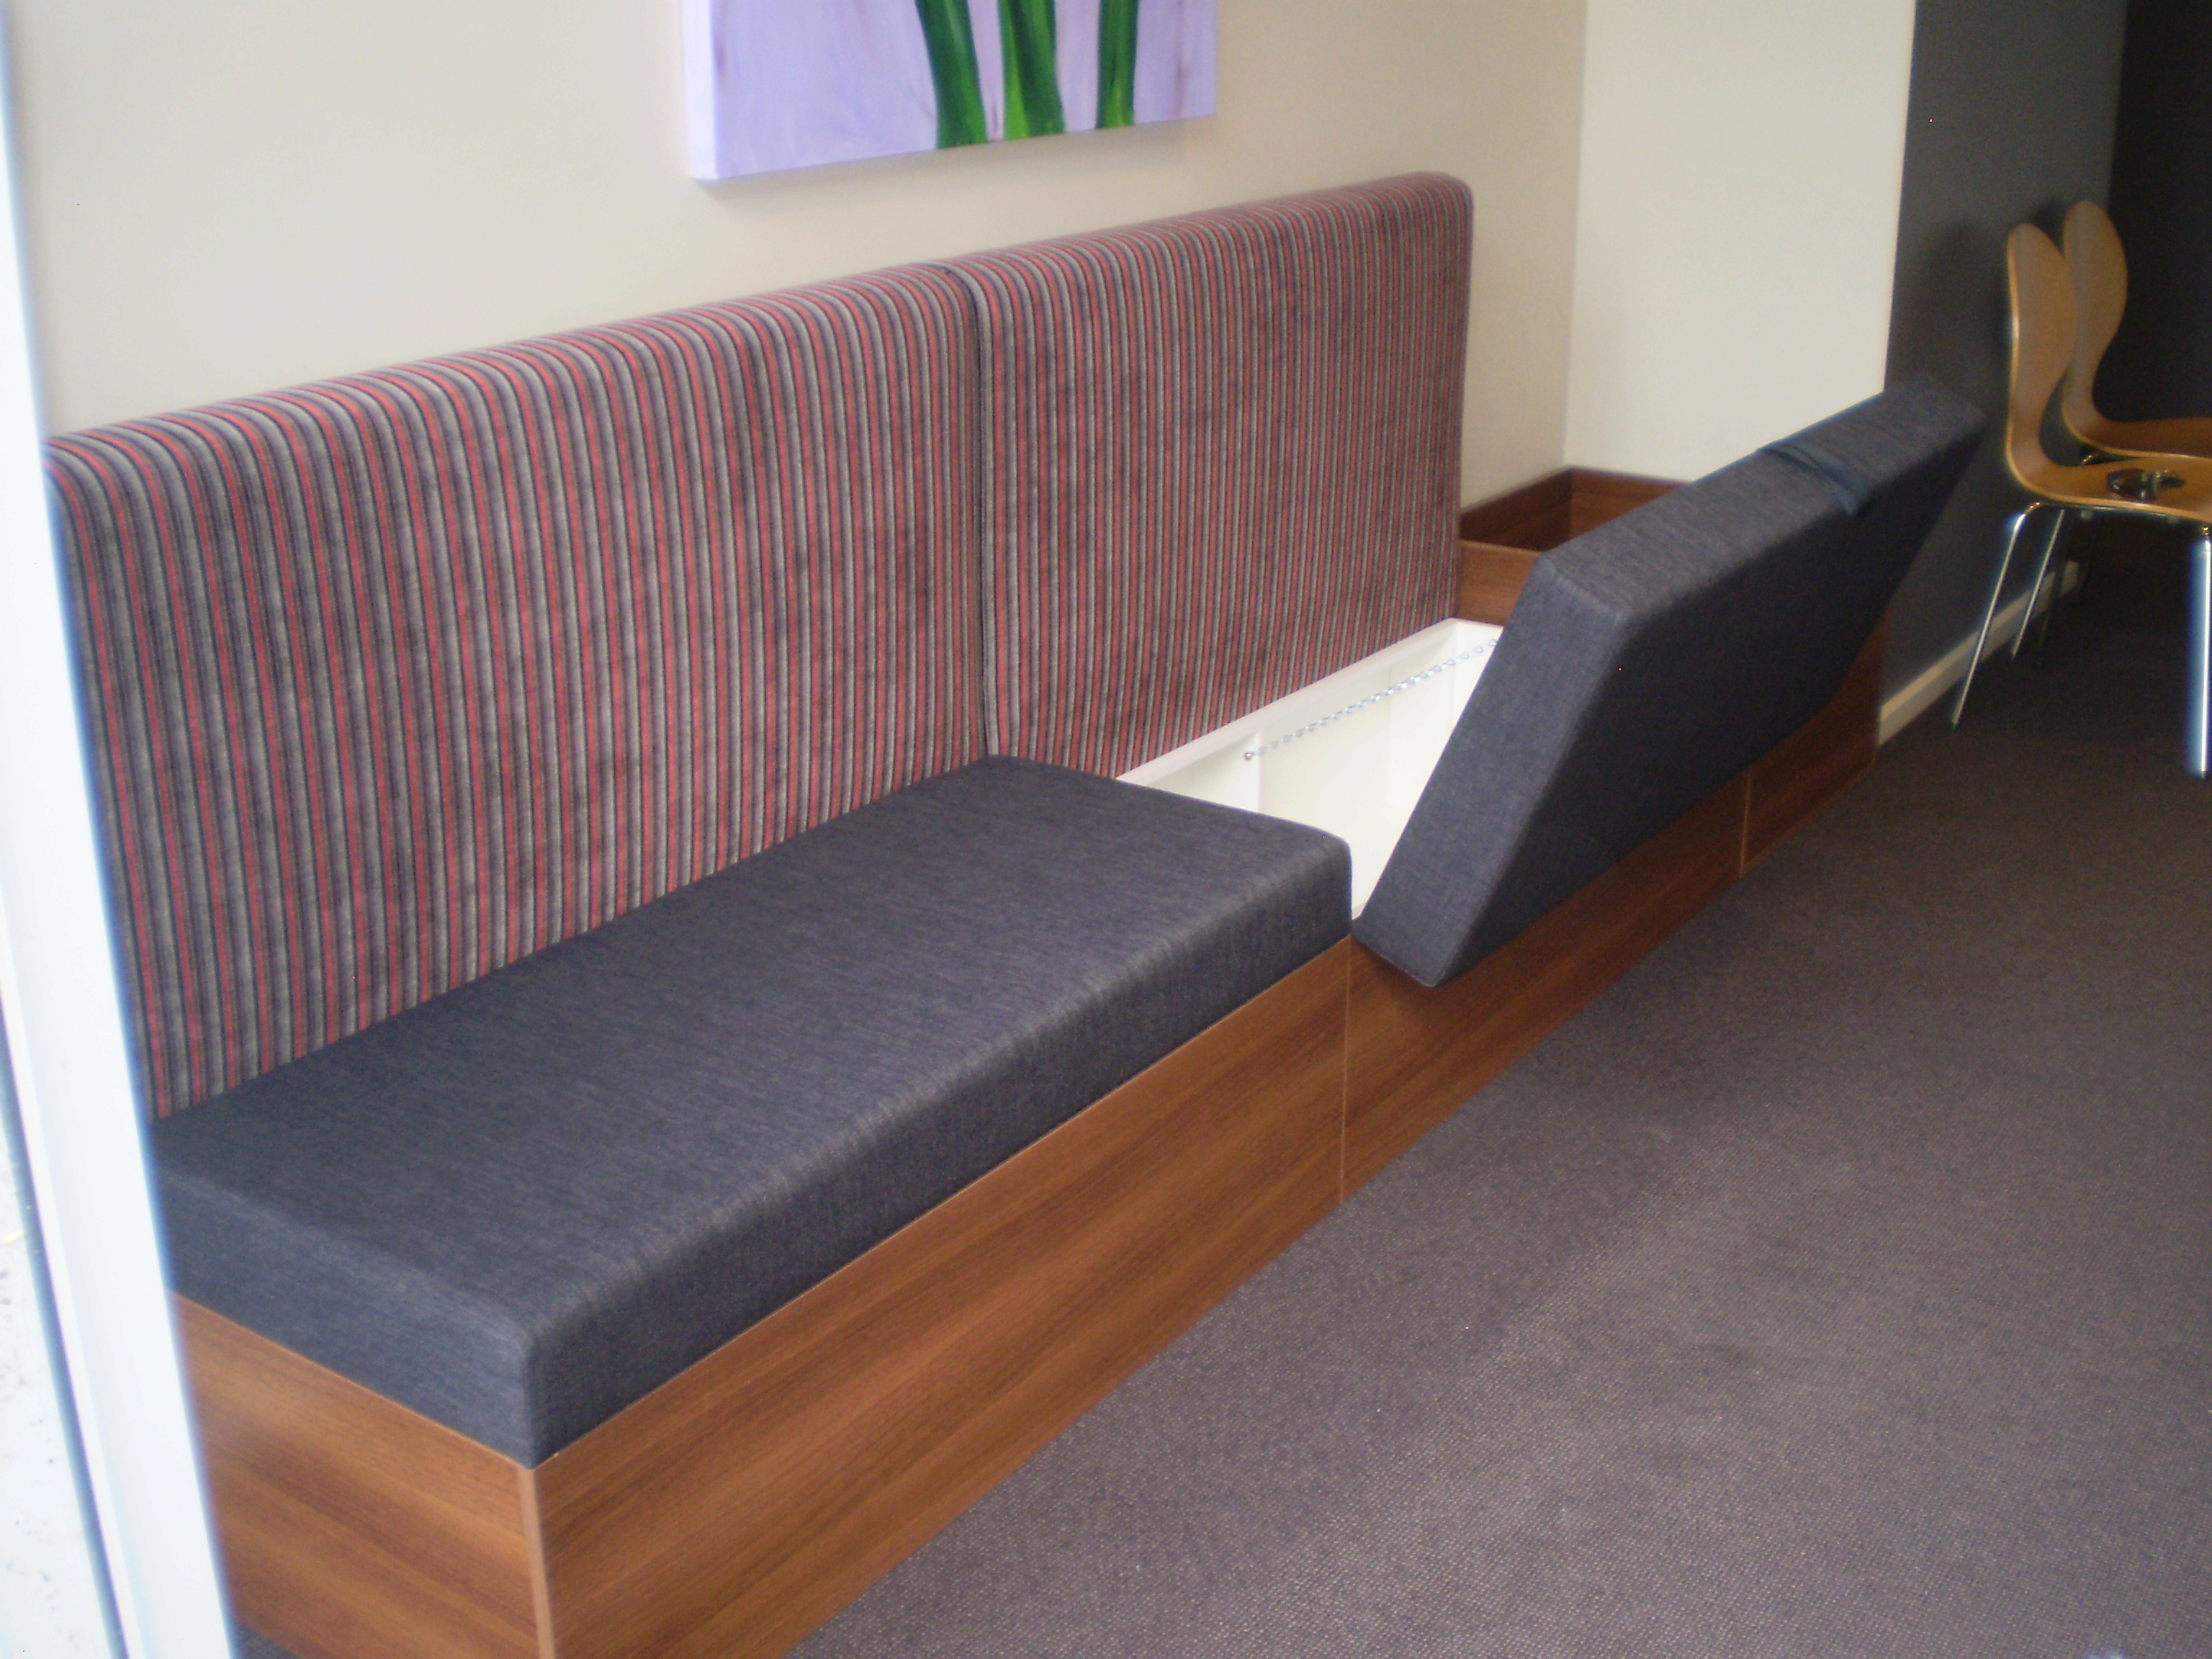 Storage Ideas Storage Banquette Seating For Businesses Or Home By Jaro Upholstery Melbourne